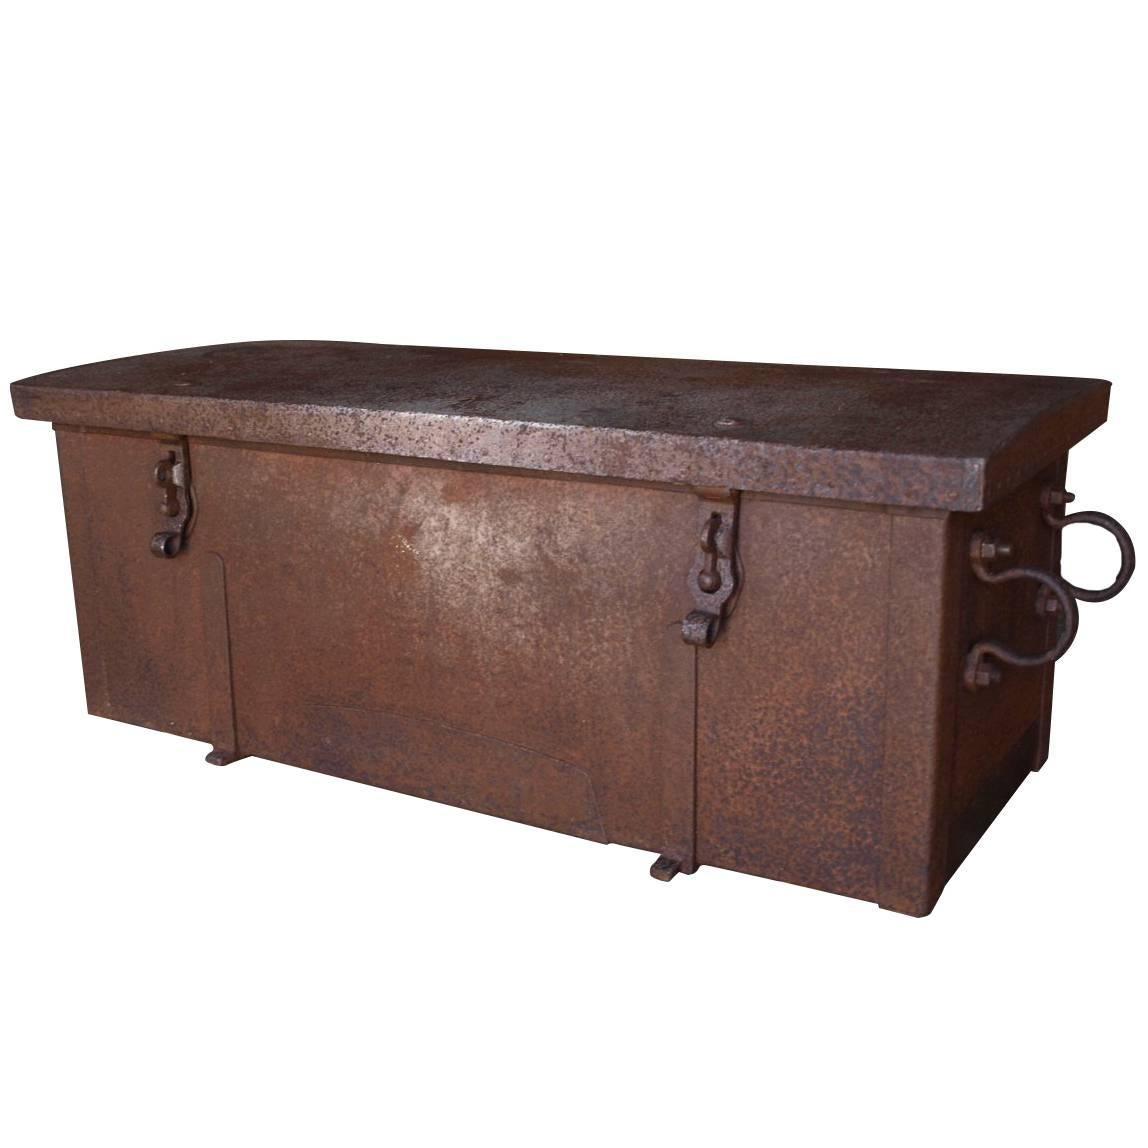 Early 20th Century French Trunk